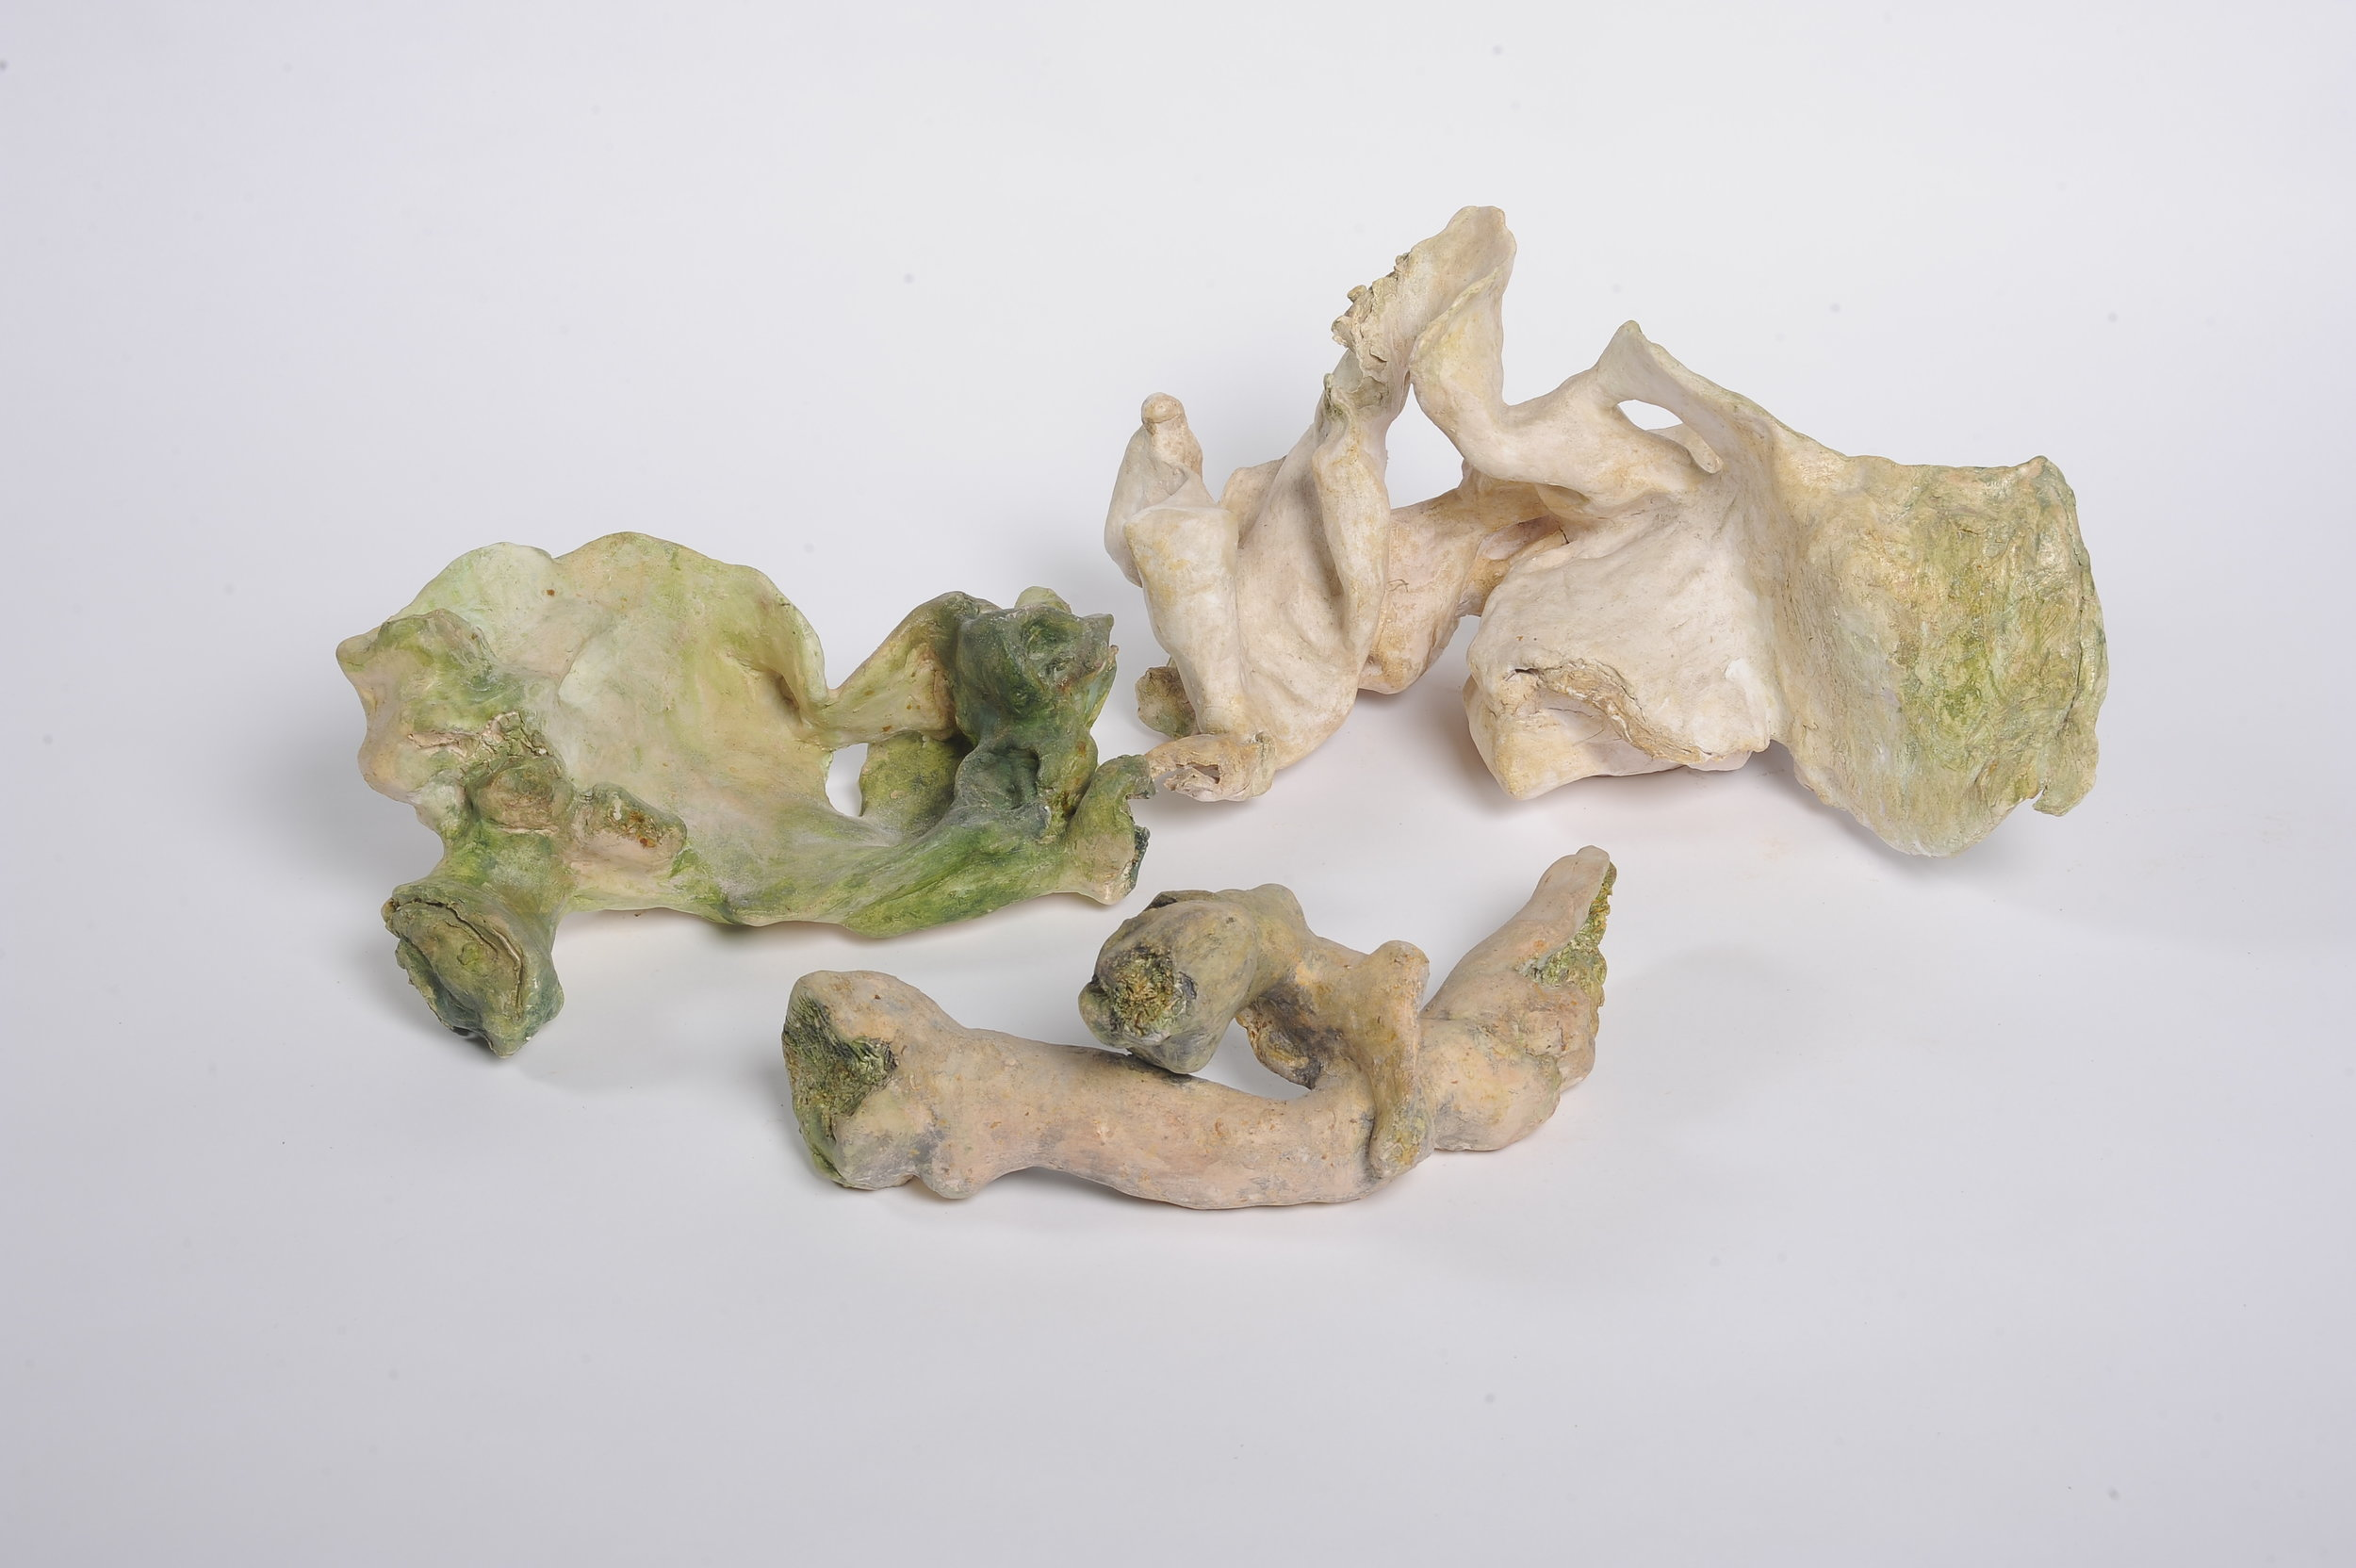 NAOMI ELLER  Embodiment of Memory  2014 Ceramic, oil paint, shellac and wax Dimensions variable